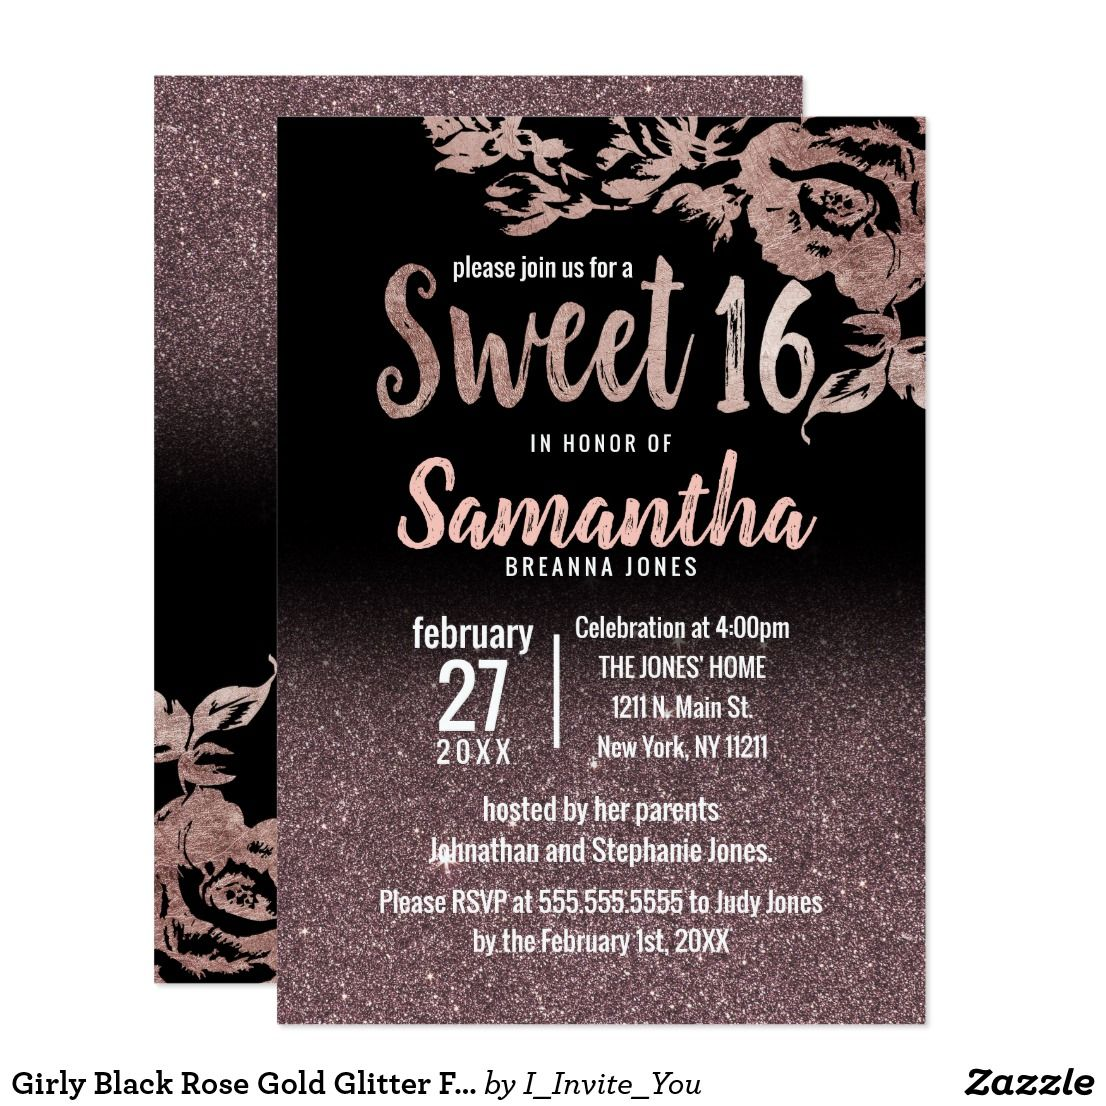 Girly Black Rose Gold Glitter Floral Sweet 16 Invitation Zazzle